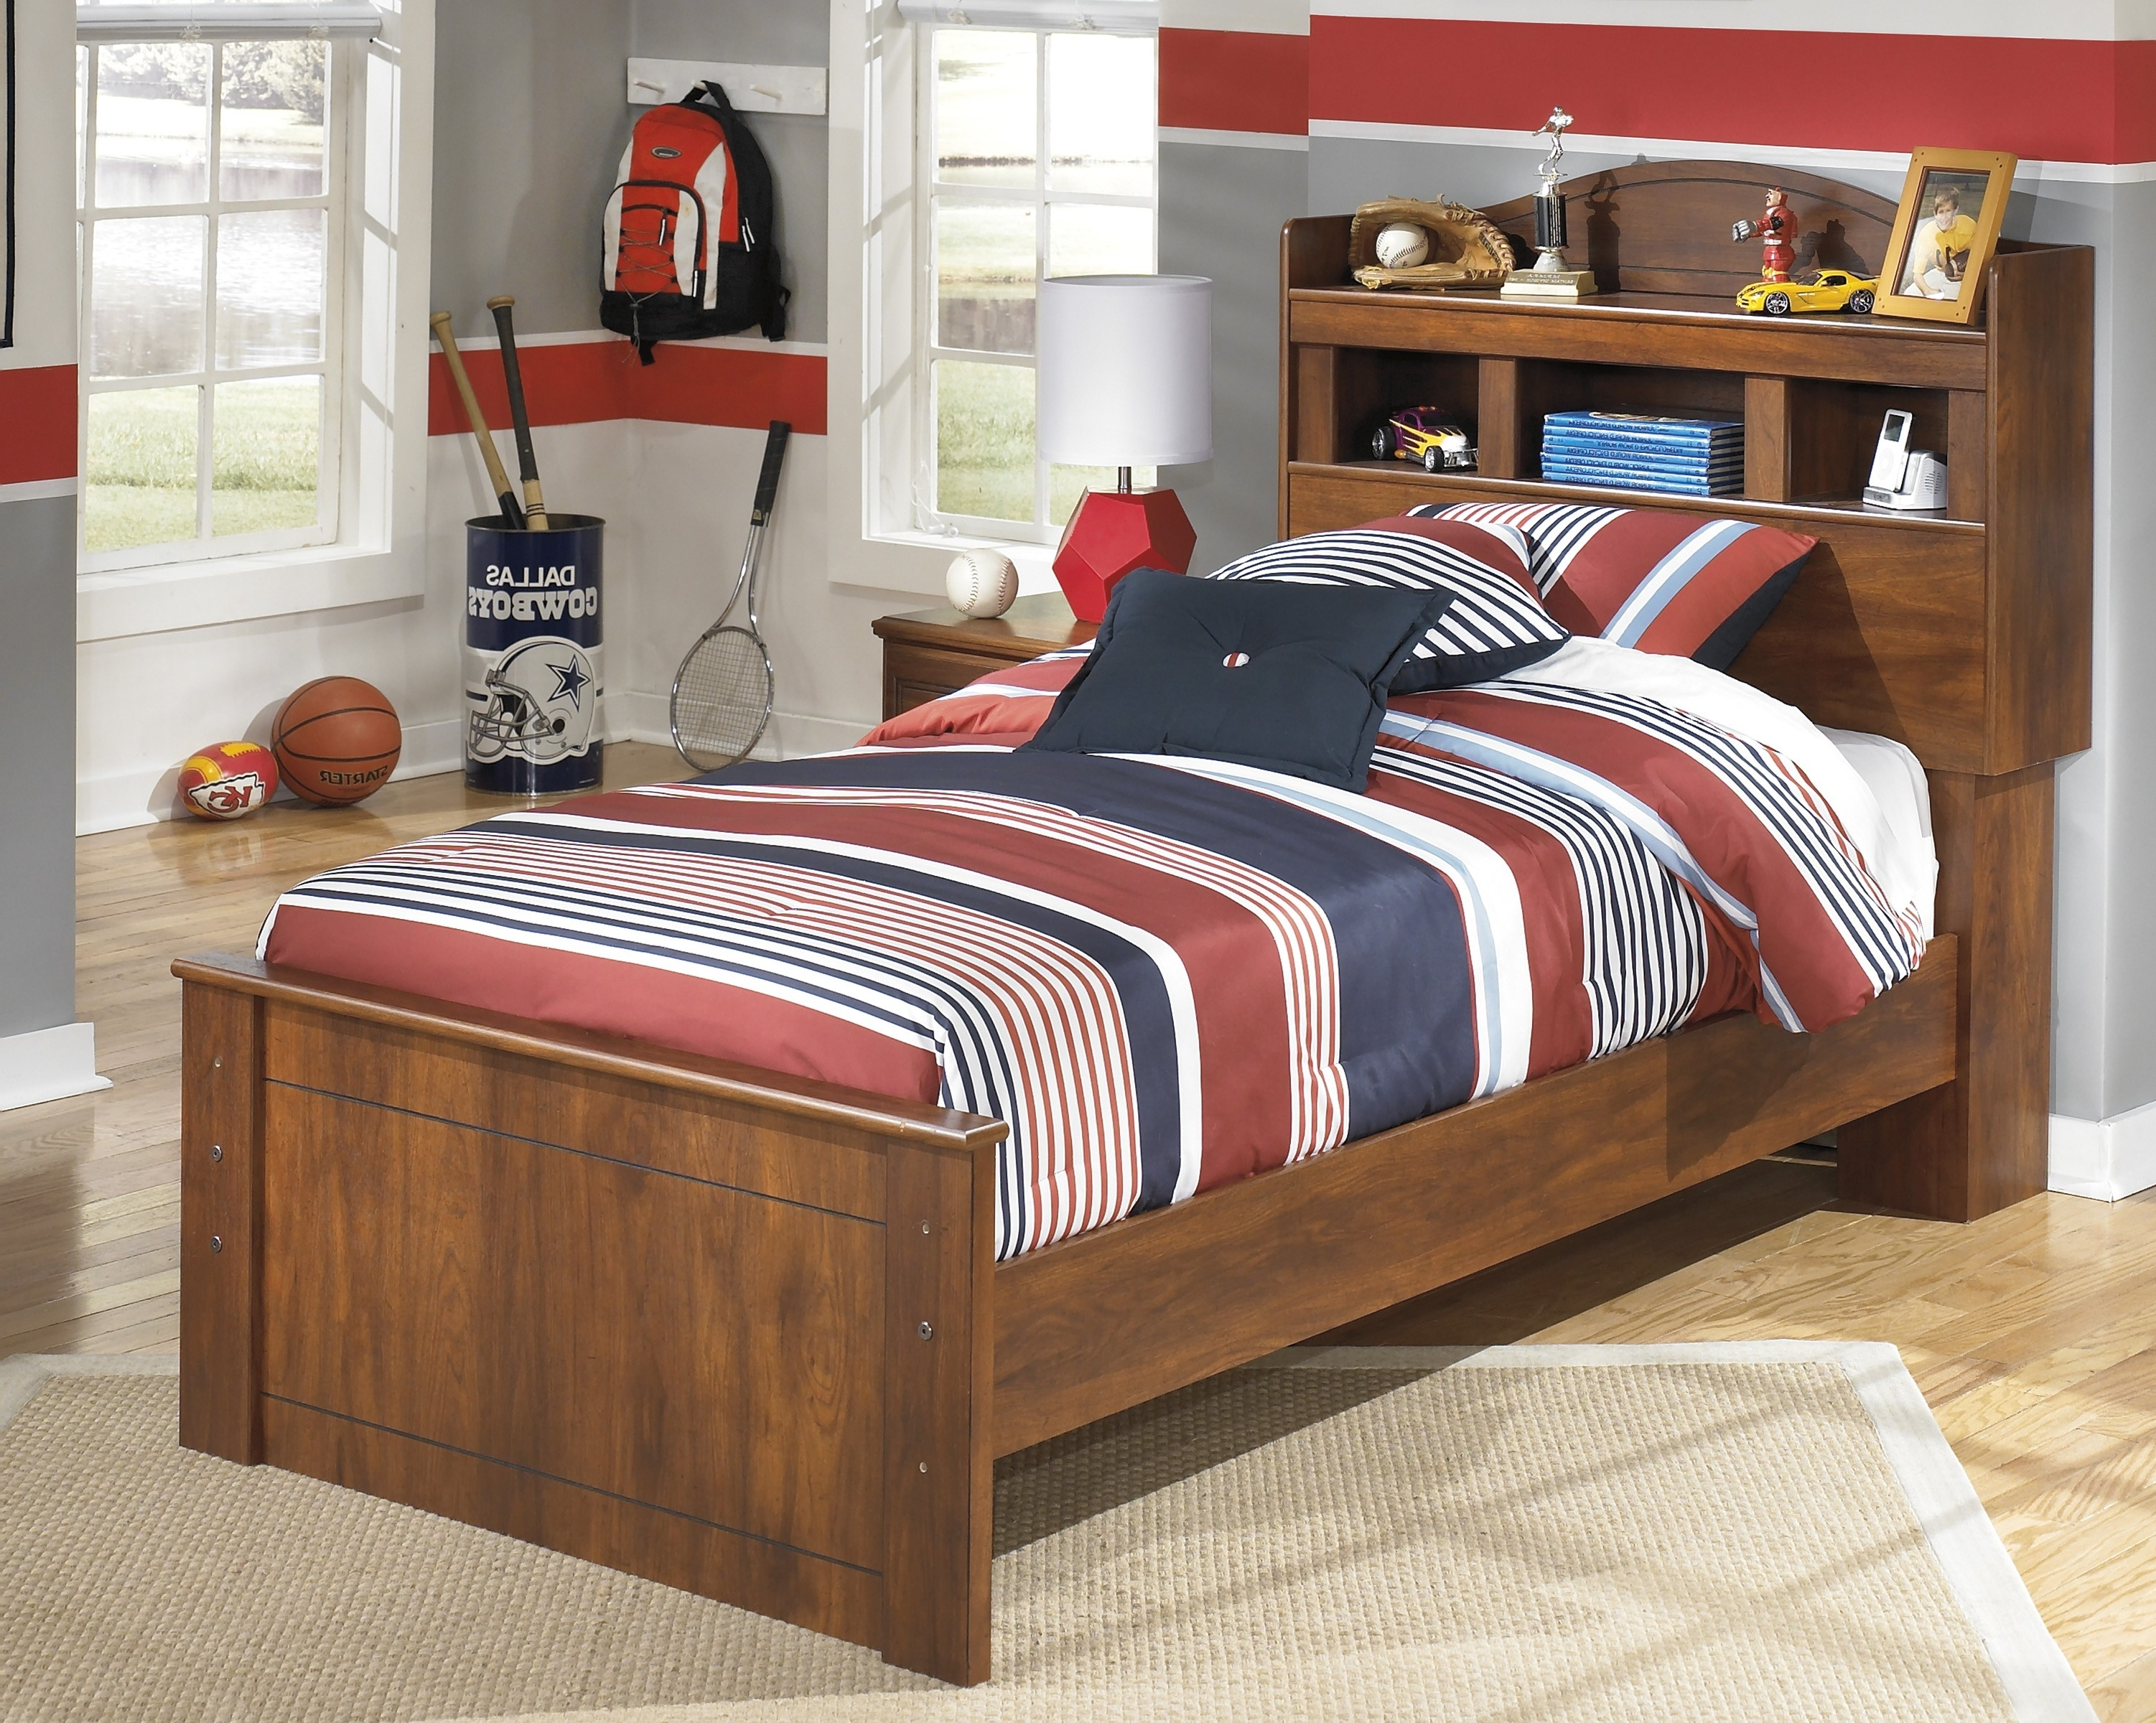 Bookcases Ideas: Dexifield Twin Bookcase Bed Ashley Furniture Intended For Favorite Bookcases Bed (View 6 of 15)